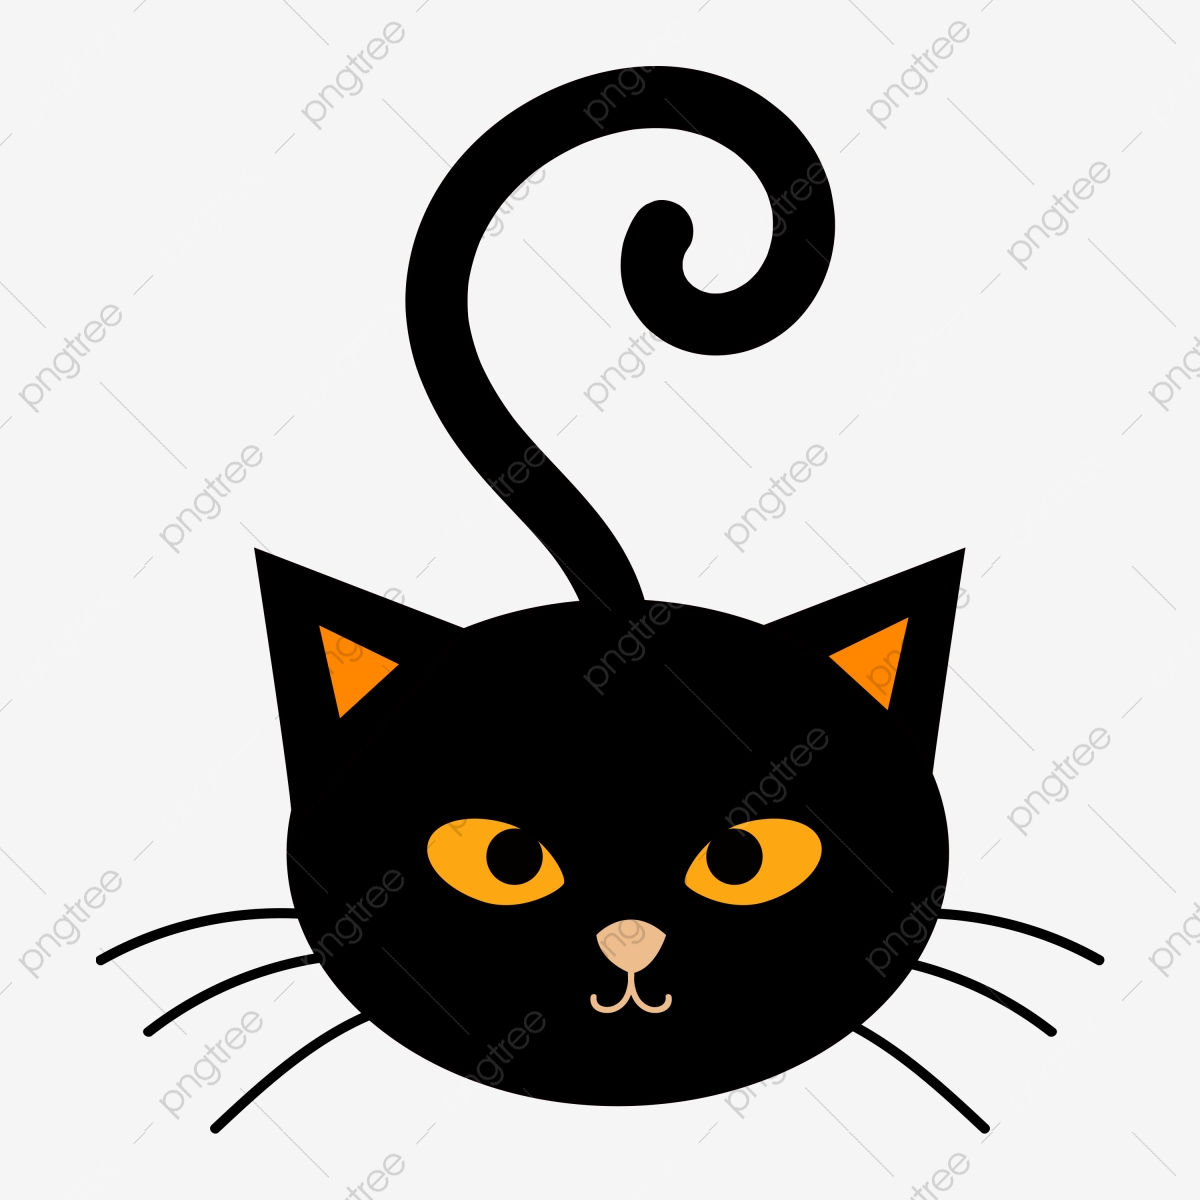 Cute Cat Vector For Halloween Decoration Cat Cat Vector Cat Halloween Png And Vector With Transparent Background For Free Download